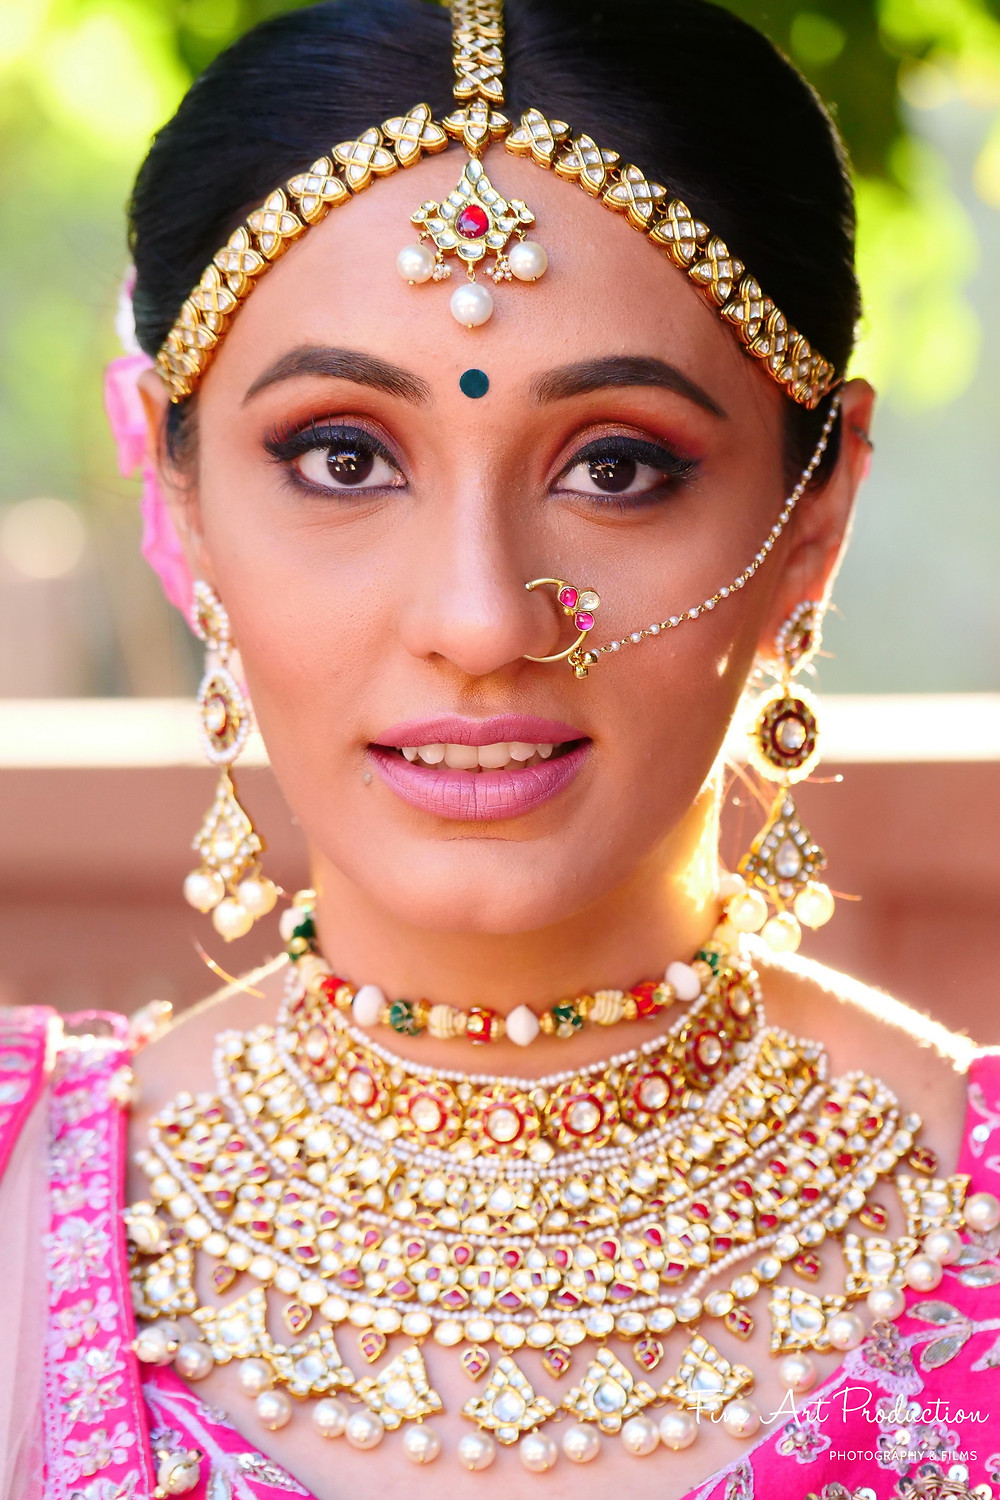 Beautiful Indian Bride on her Wedding day with her custom wedding jewelry